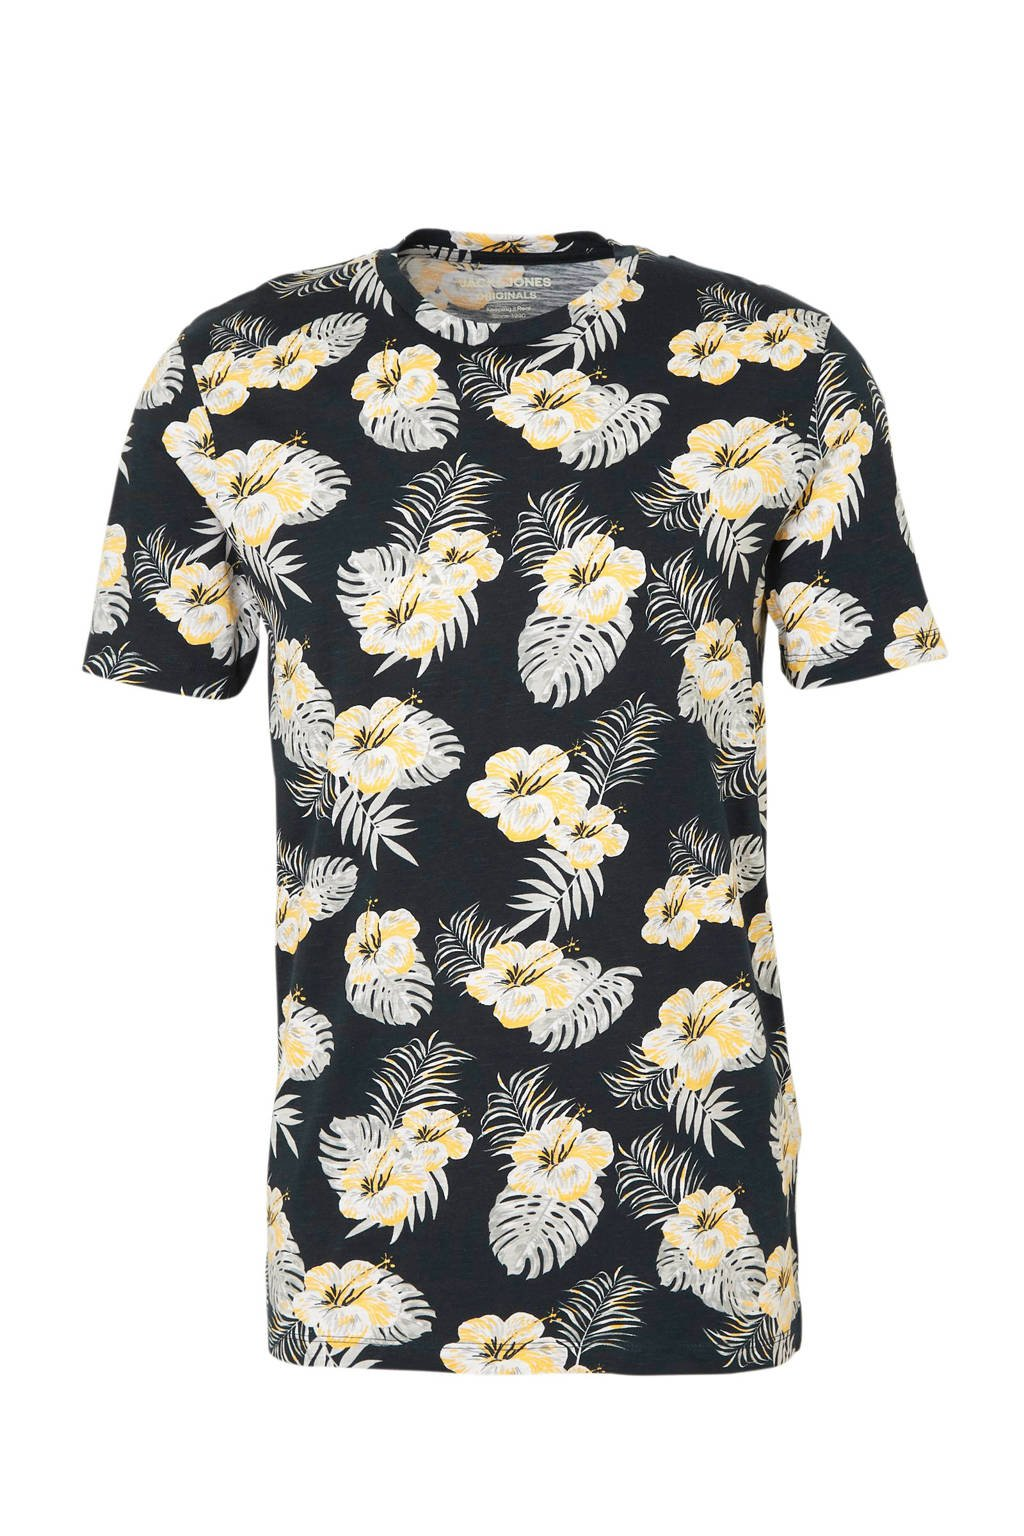 JACK & JONES ORIGINALS T-shirt met all over print donkerblauw, Donkerblauw